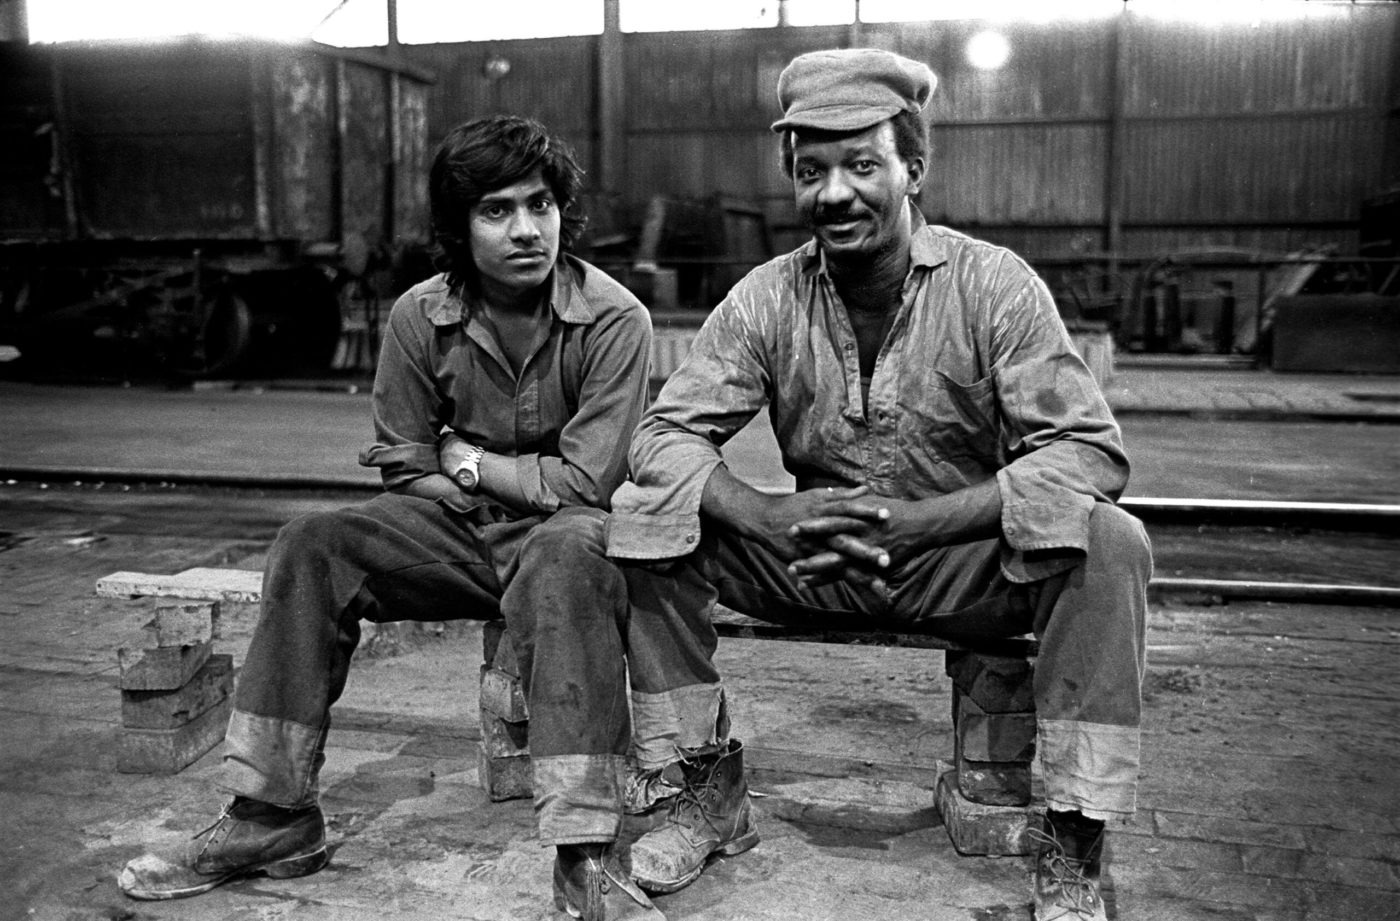 Two men sit on a bench in a train depot, wearing workman's clothes. The younger of the two, of South Asian origin, sits with his arms folded. The other, a black man, wears a cap, rests his elbows on his knees and smiles.